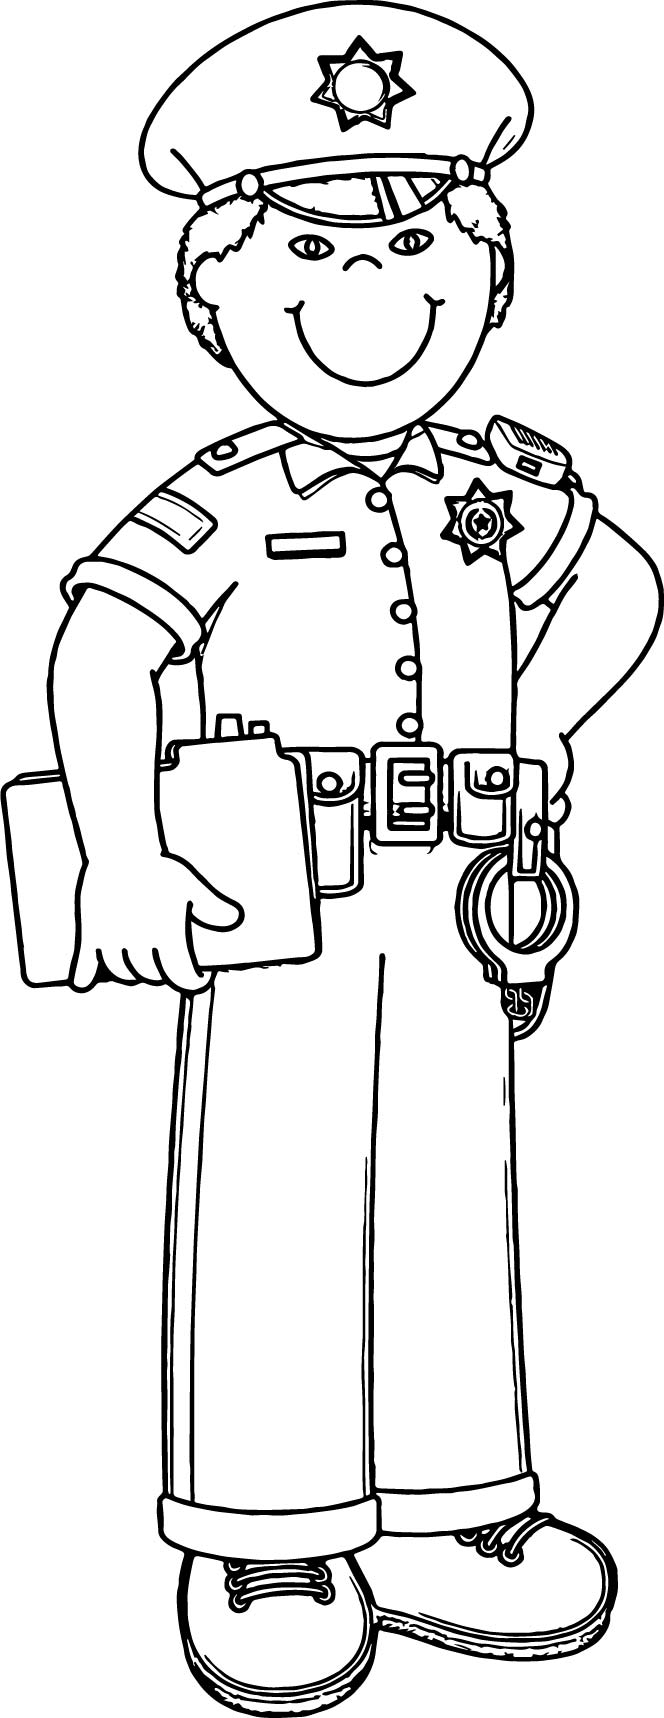 police officer coloring pictures policeman coloring pages wecoloringpagecom police coloring pictures officer